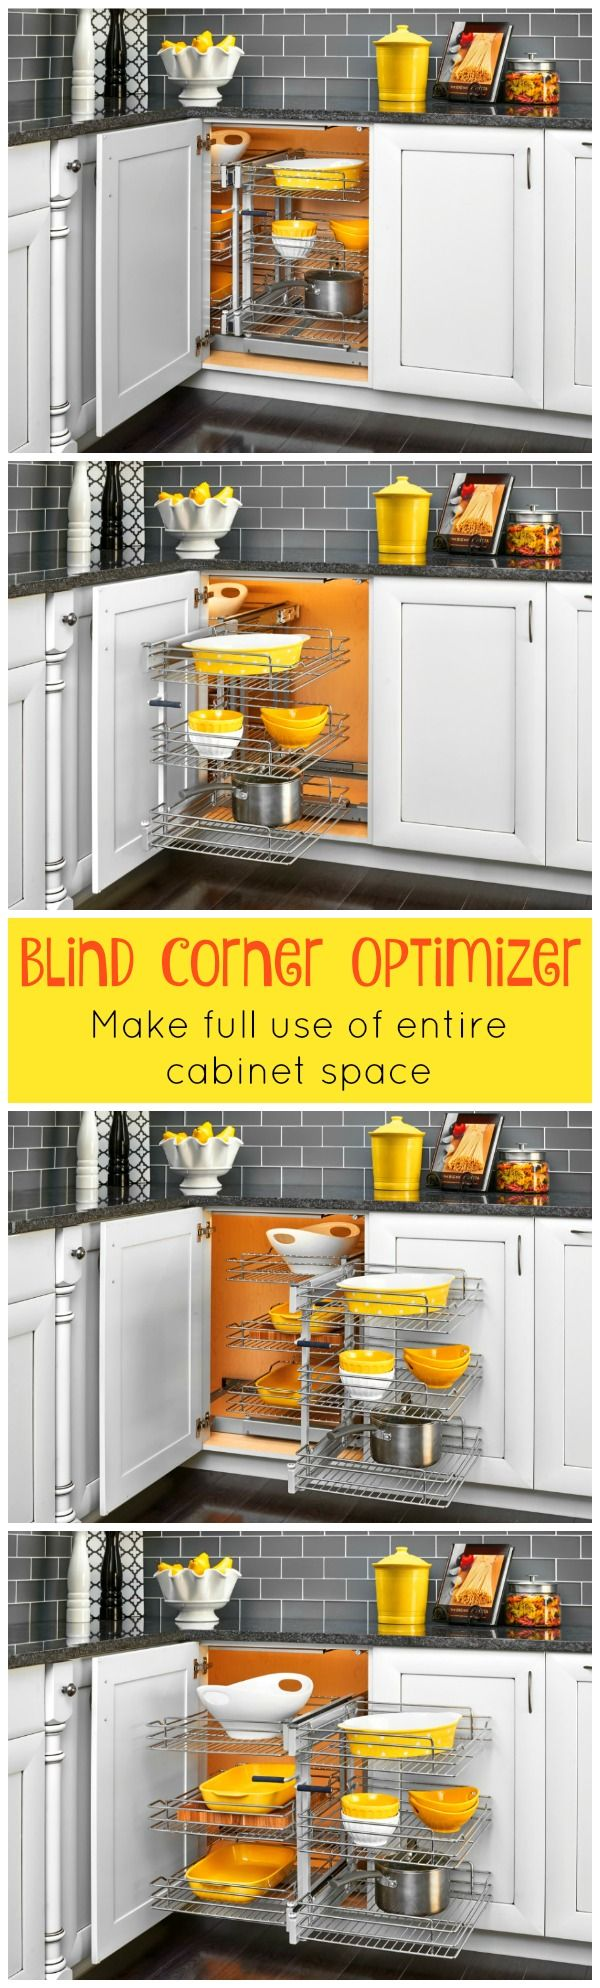 Kitchen cabinet tremendous corner base sink cabinet with half moon - Blind Corner Cabinet Pull Out Chrome 2 Tier Basket Organizer